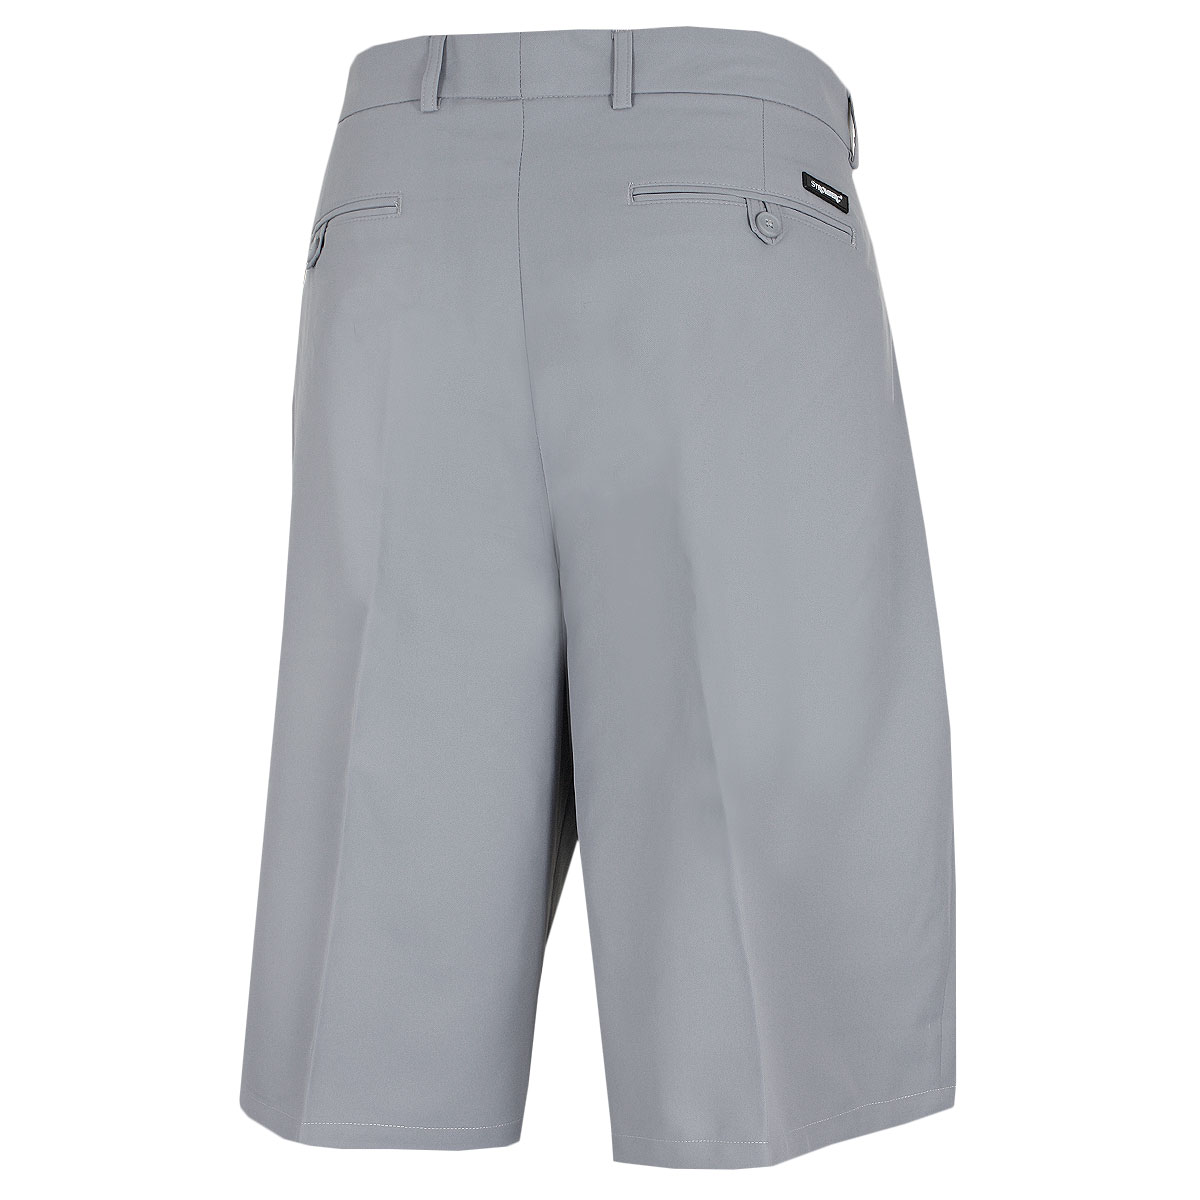 Stromberg-Mens-Plain-Front-Lightweight-Breathable-Golf-Shorts-48-OFF-RRP thumbnail 9